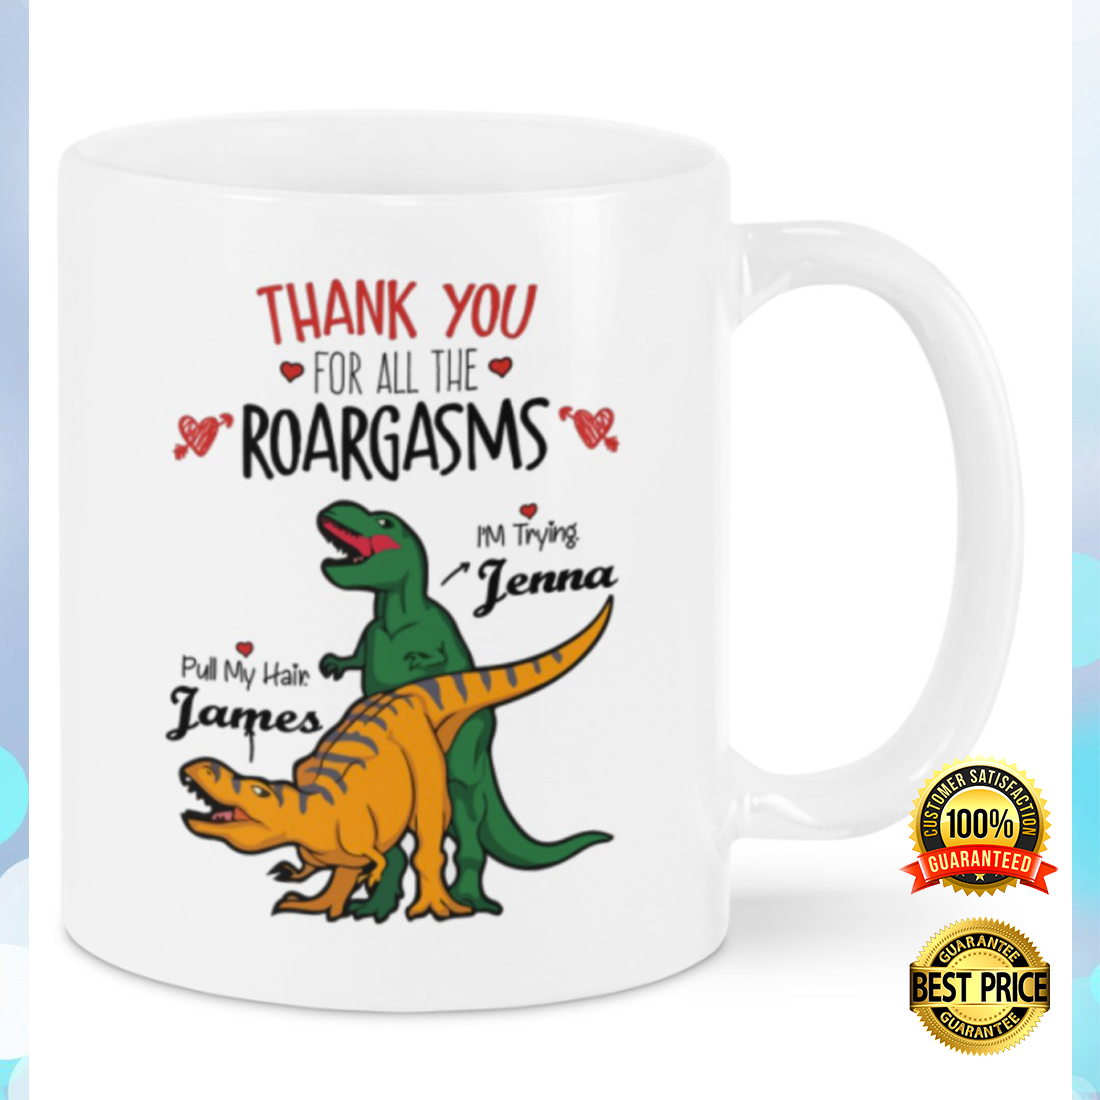 PERSONALIZED THANK YOU FOR ALL THE ROARGASMS MUG 5